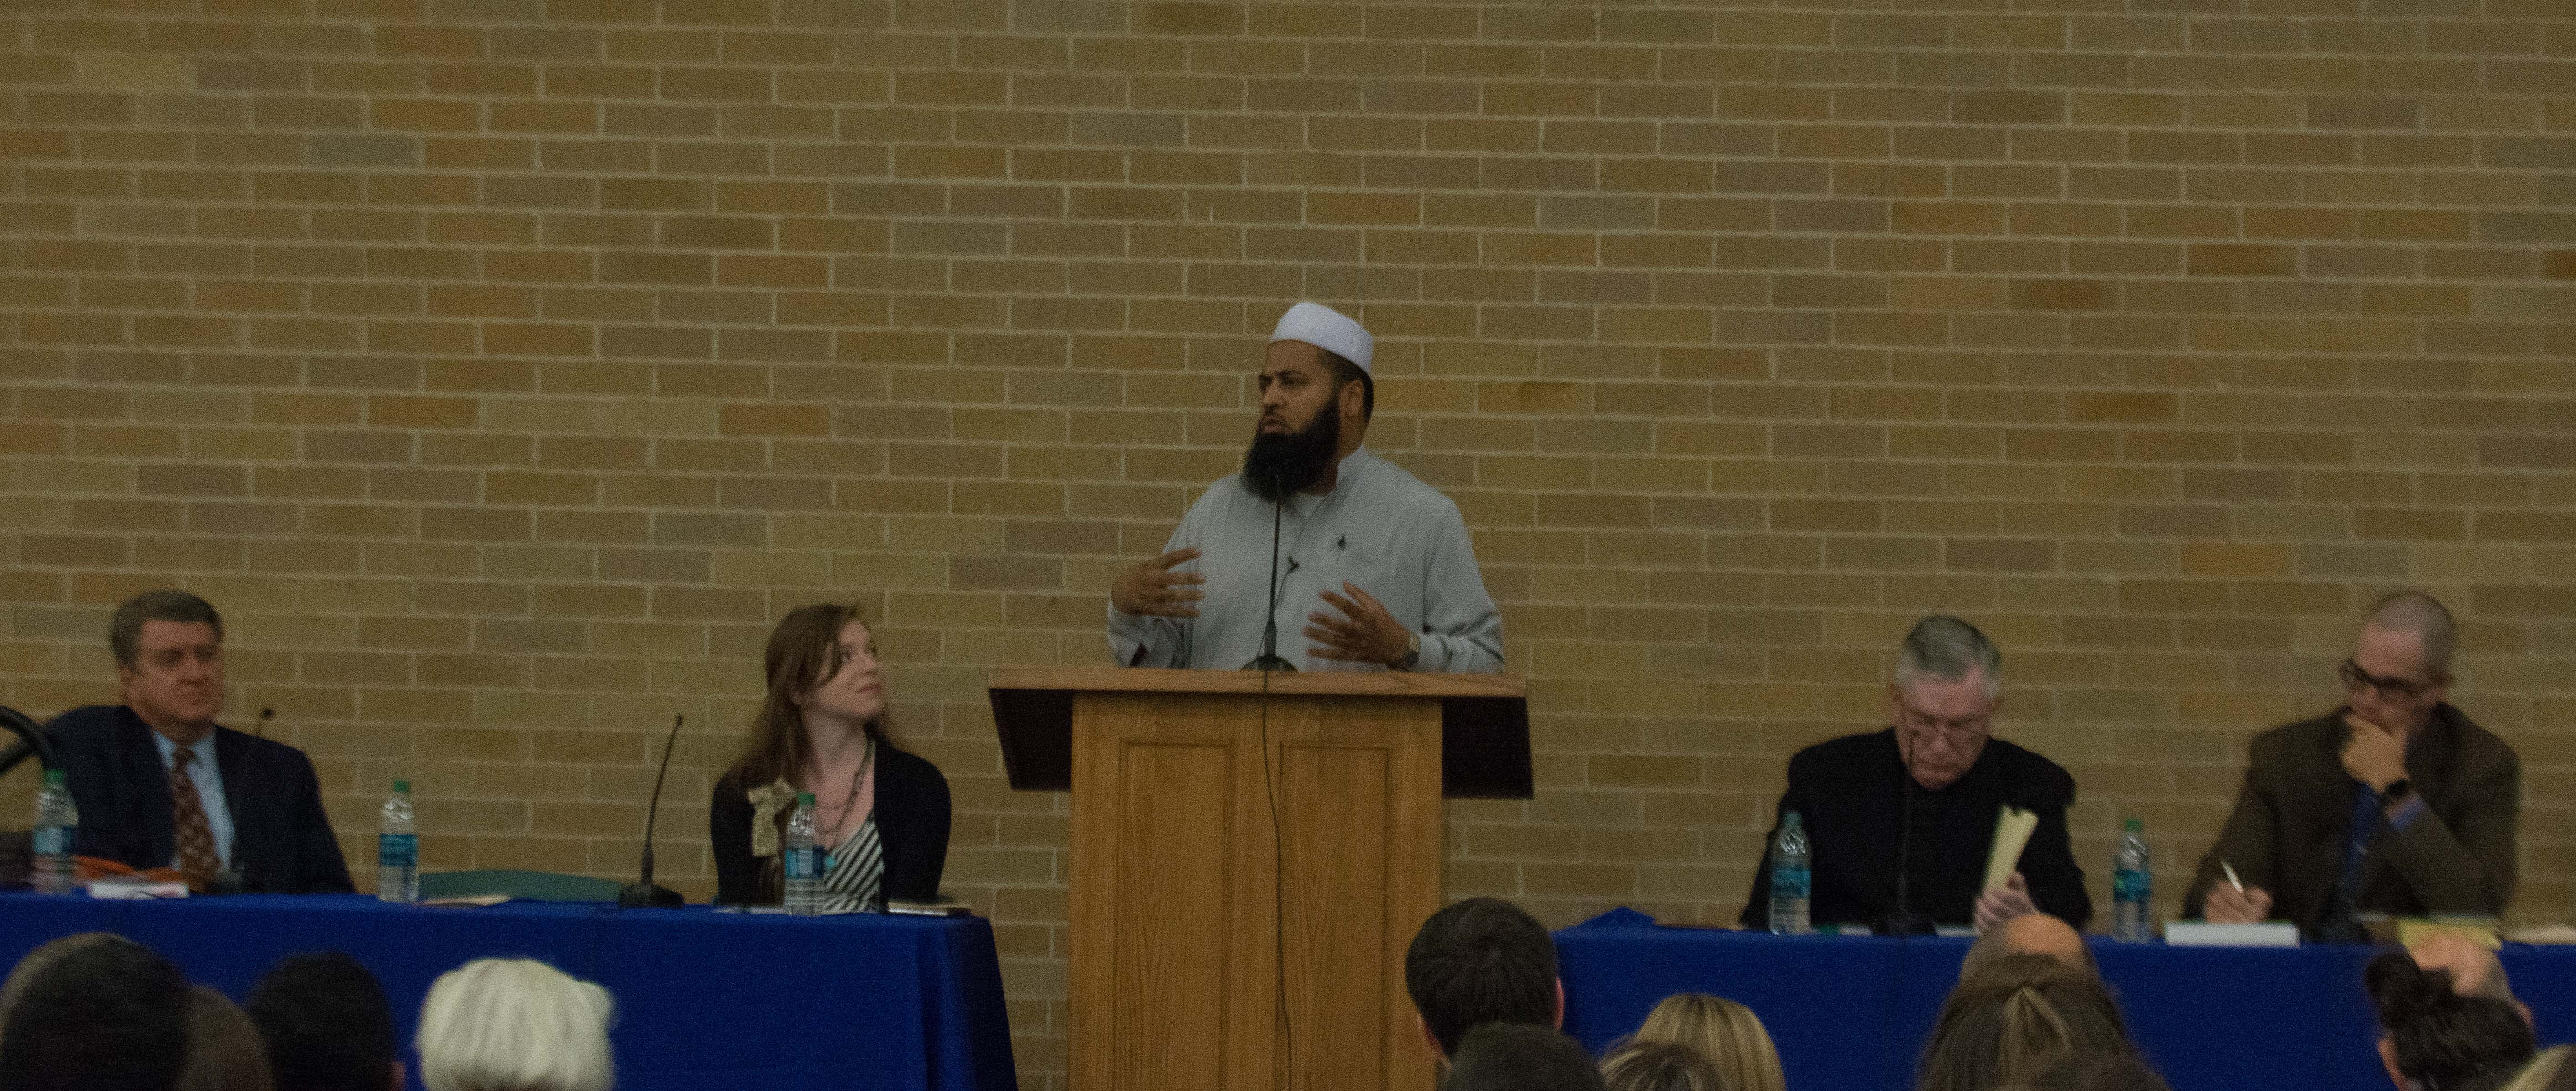 Imam Shuaib-ud Din speaks at the HEaven and Hell Symposium. From left to right: Brent Top, Amber Cazzell Nadal - President of BYU CrossSeekers, Imam Shuaib-ud Din, Monsignor M. Francis Mannion, Travis Kerns. (Natalie Bothwell)